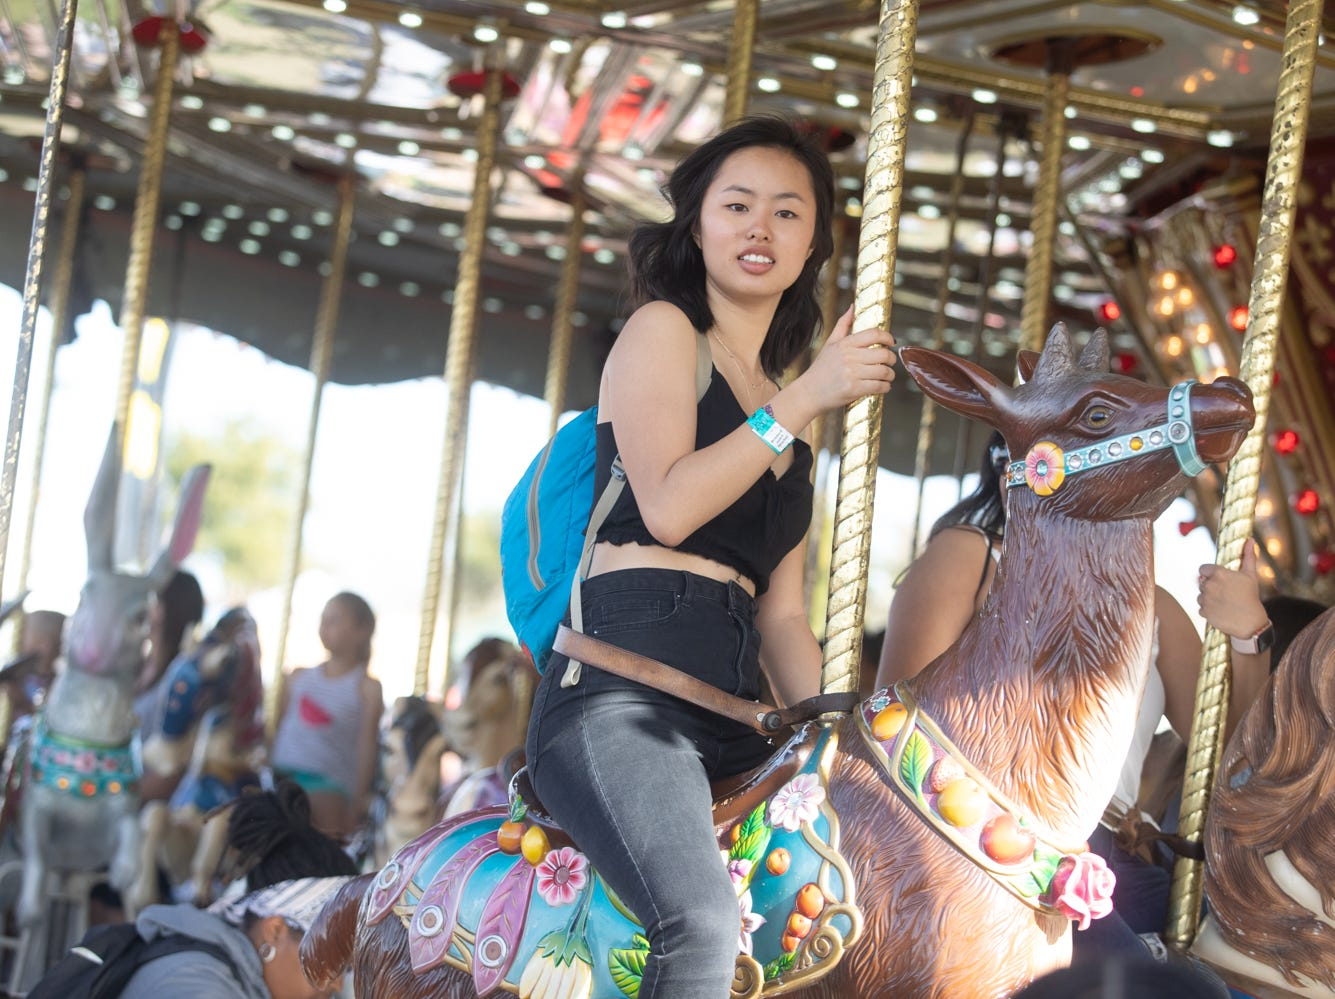 The carousel was packed all day at the Chandler Ostrich Festival on Sunday, March. 10, 2019.